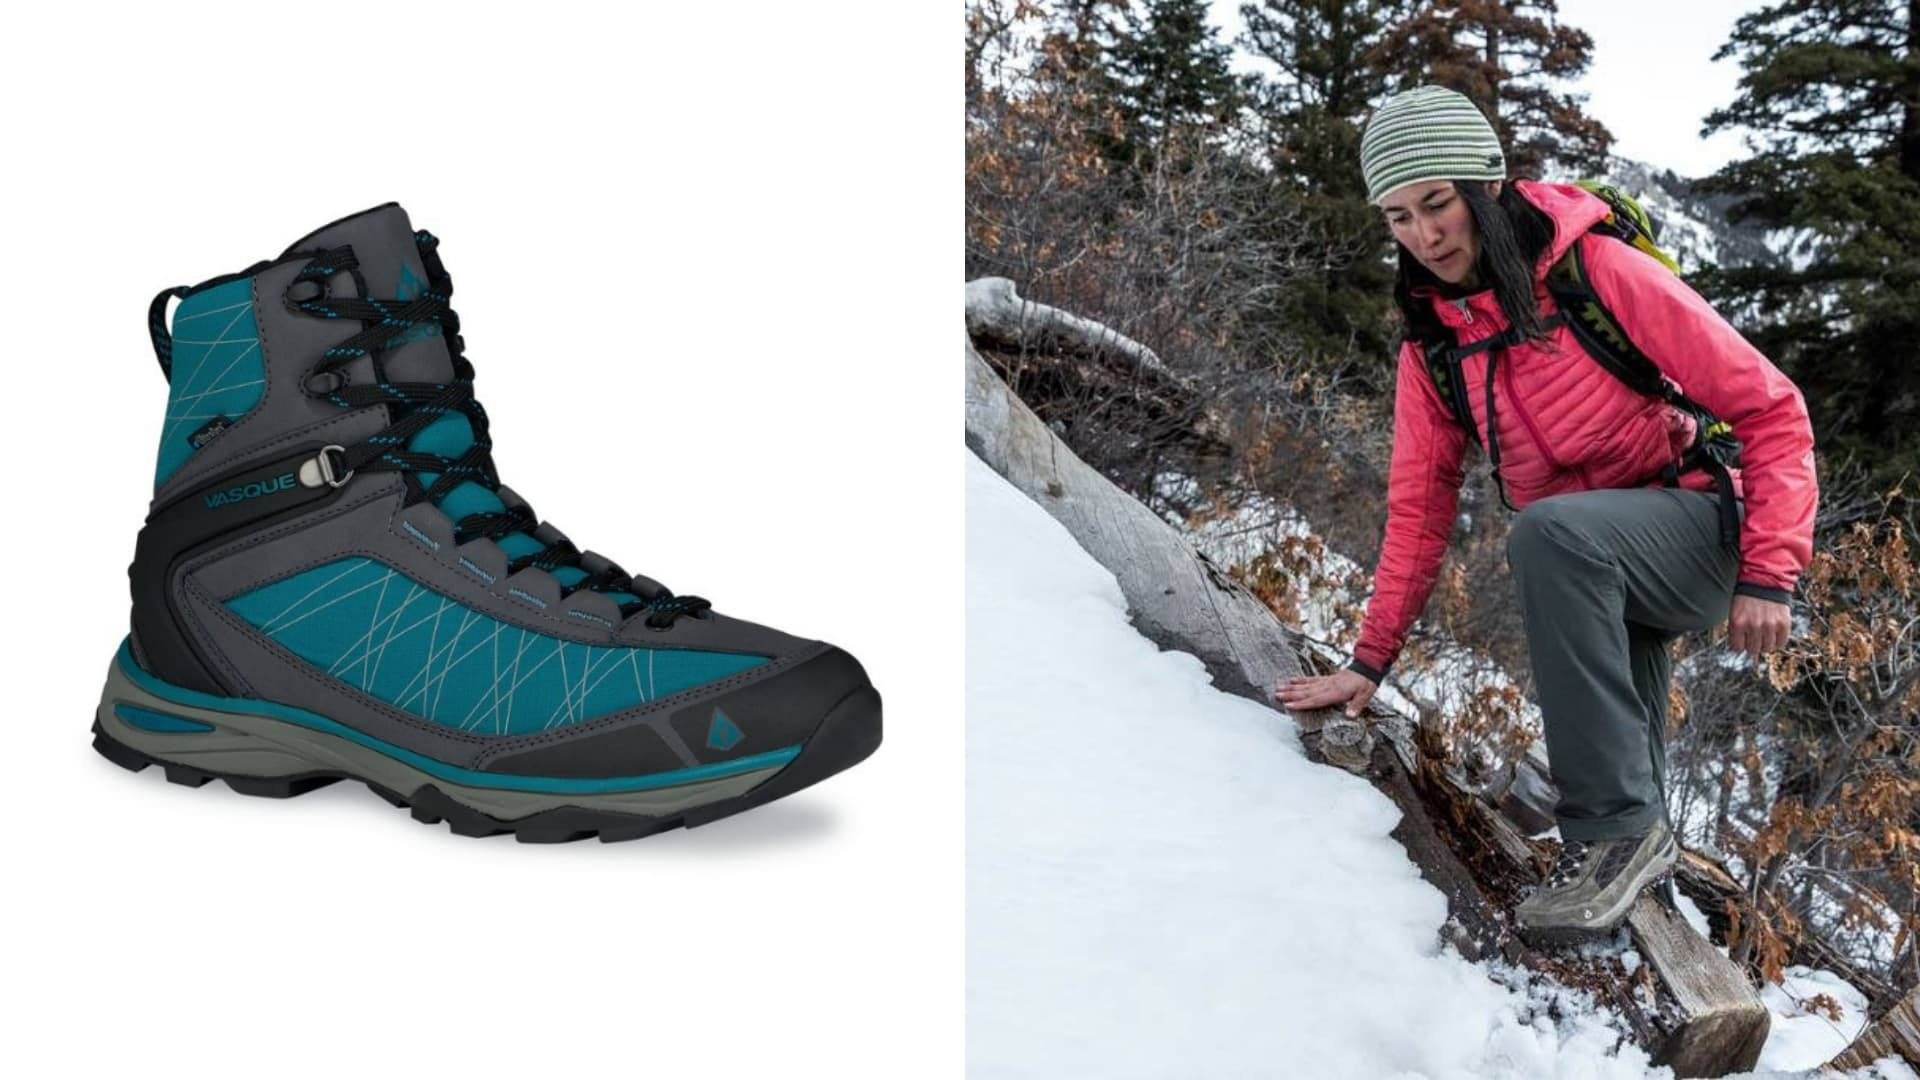 (left) gray black and teal winter hiking boot (right) woman in pink coat stepping over log on snow covered hiking trail